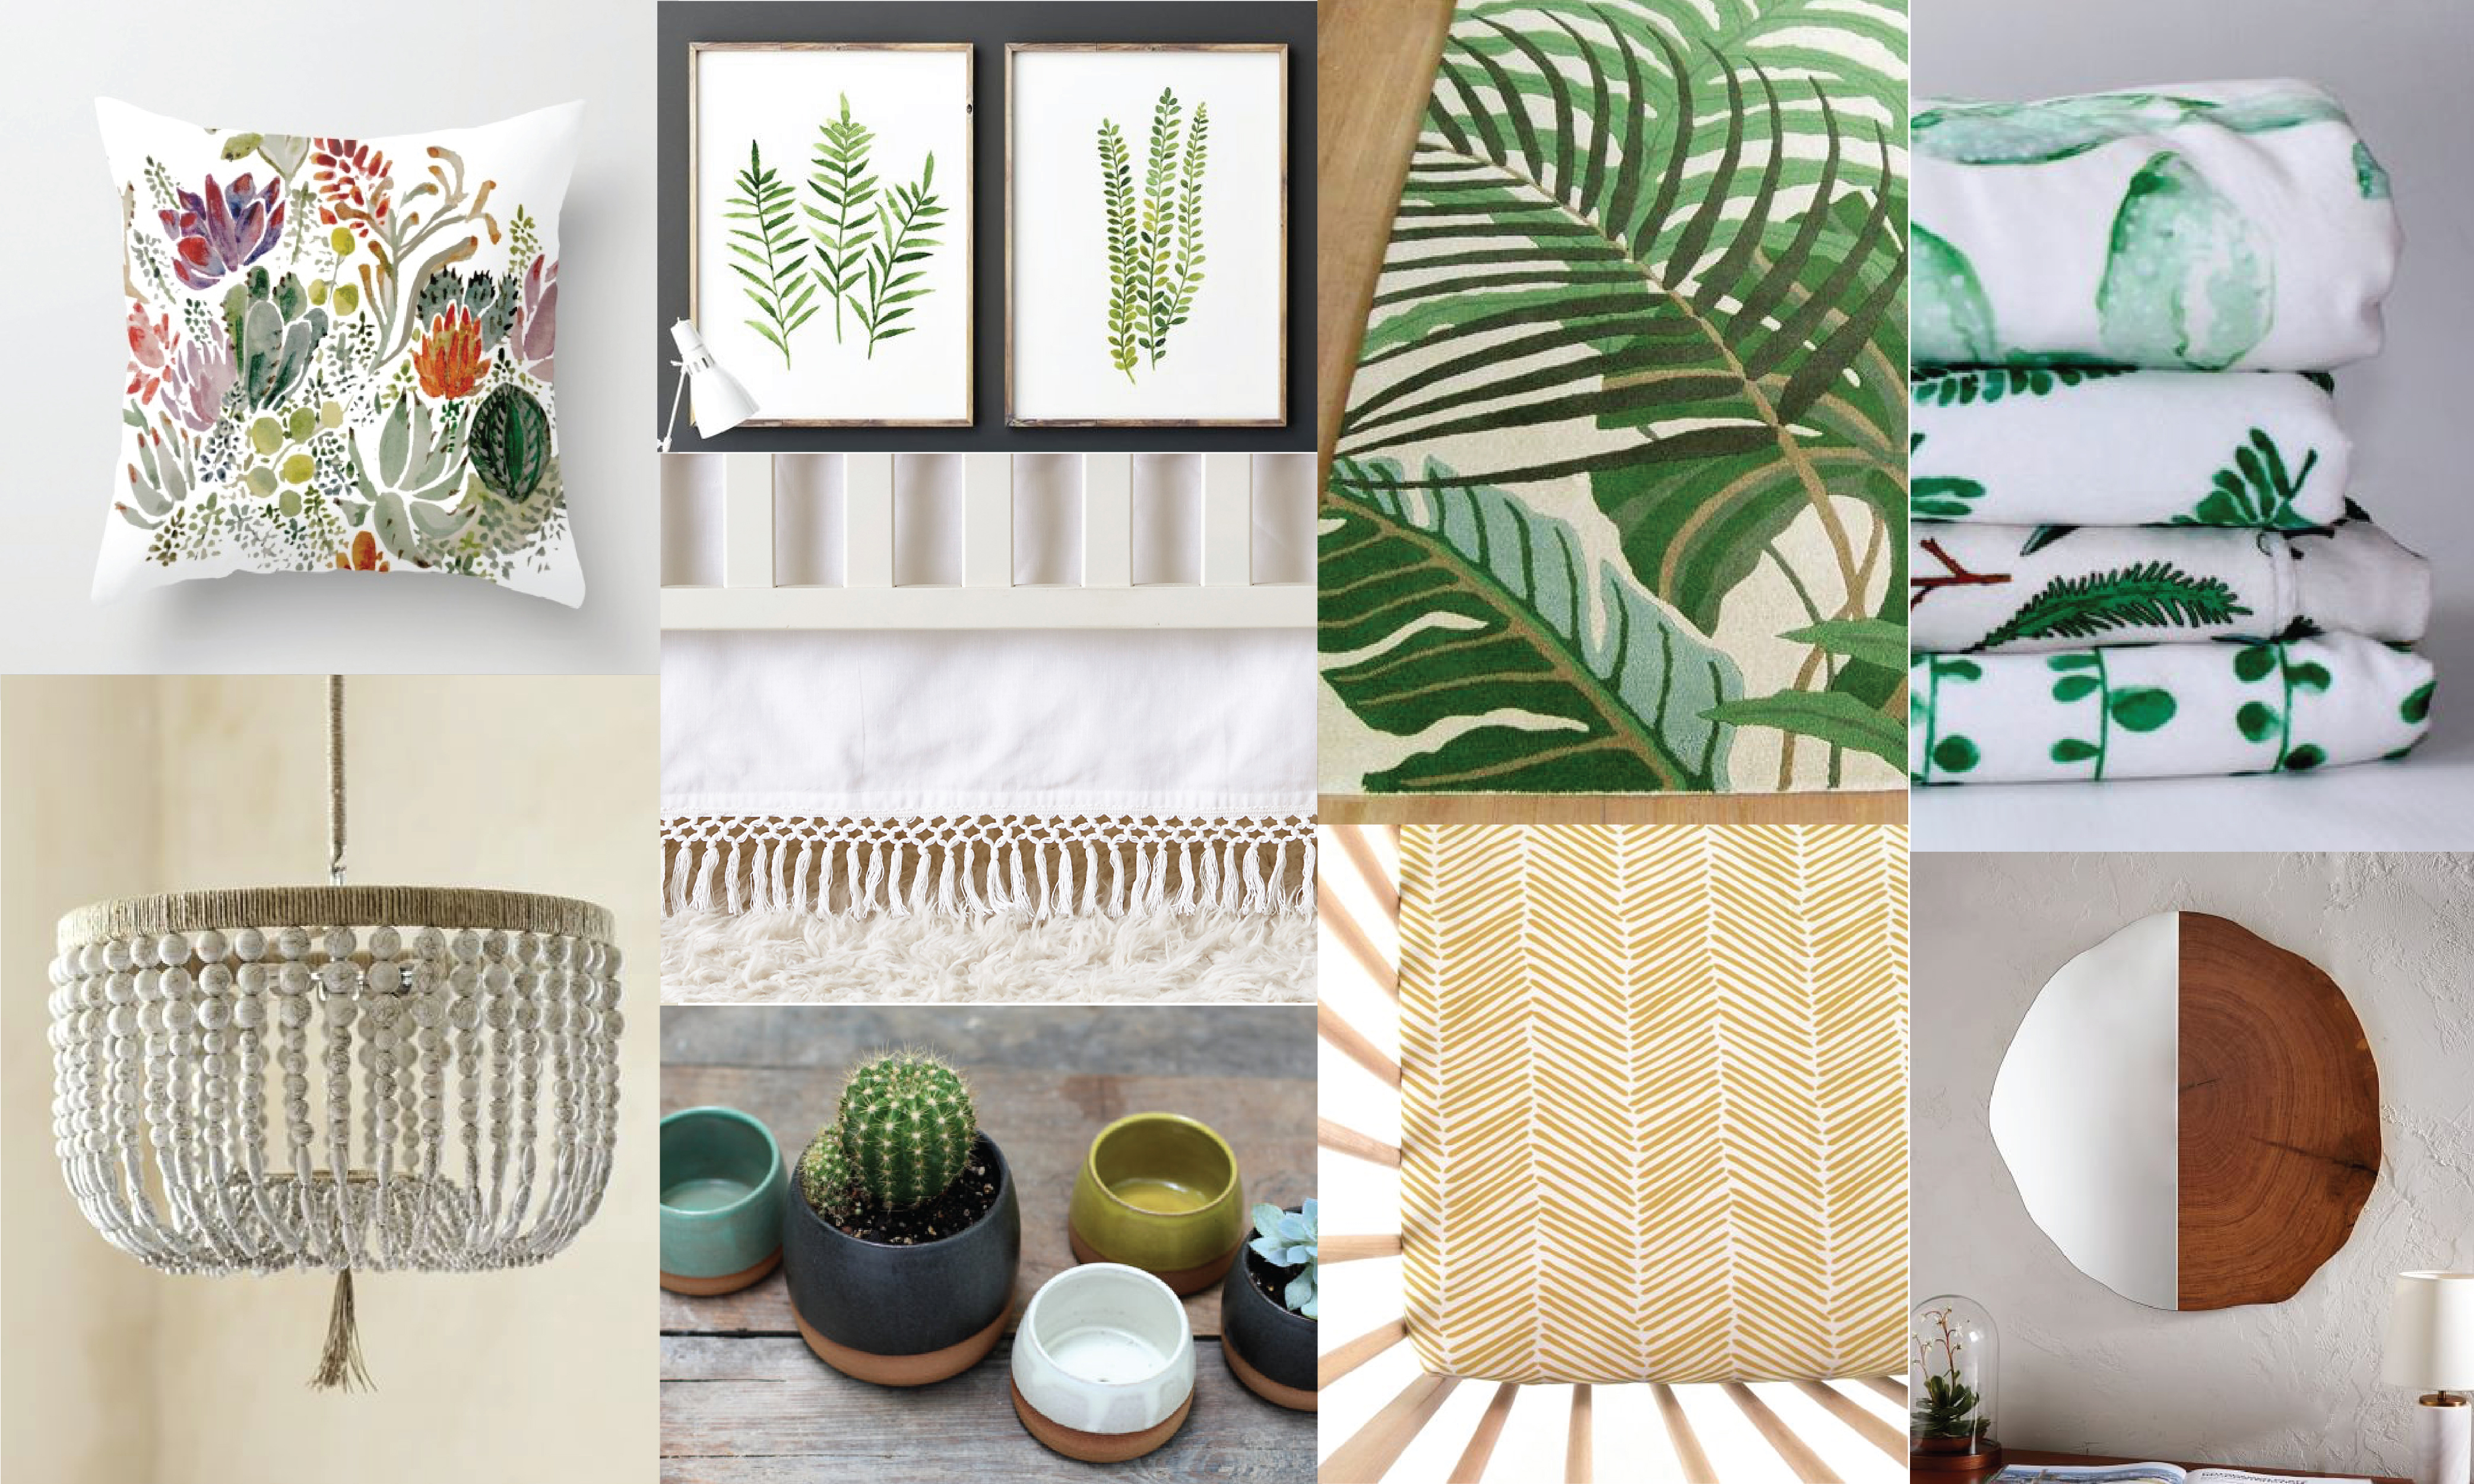 If You Re Looking For A Fresh And Clean Design Scheme Your Baby S Nursery Check Out Our Botanical Theme Picks After All Greenery Is The